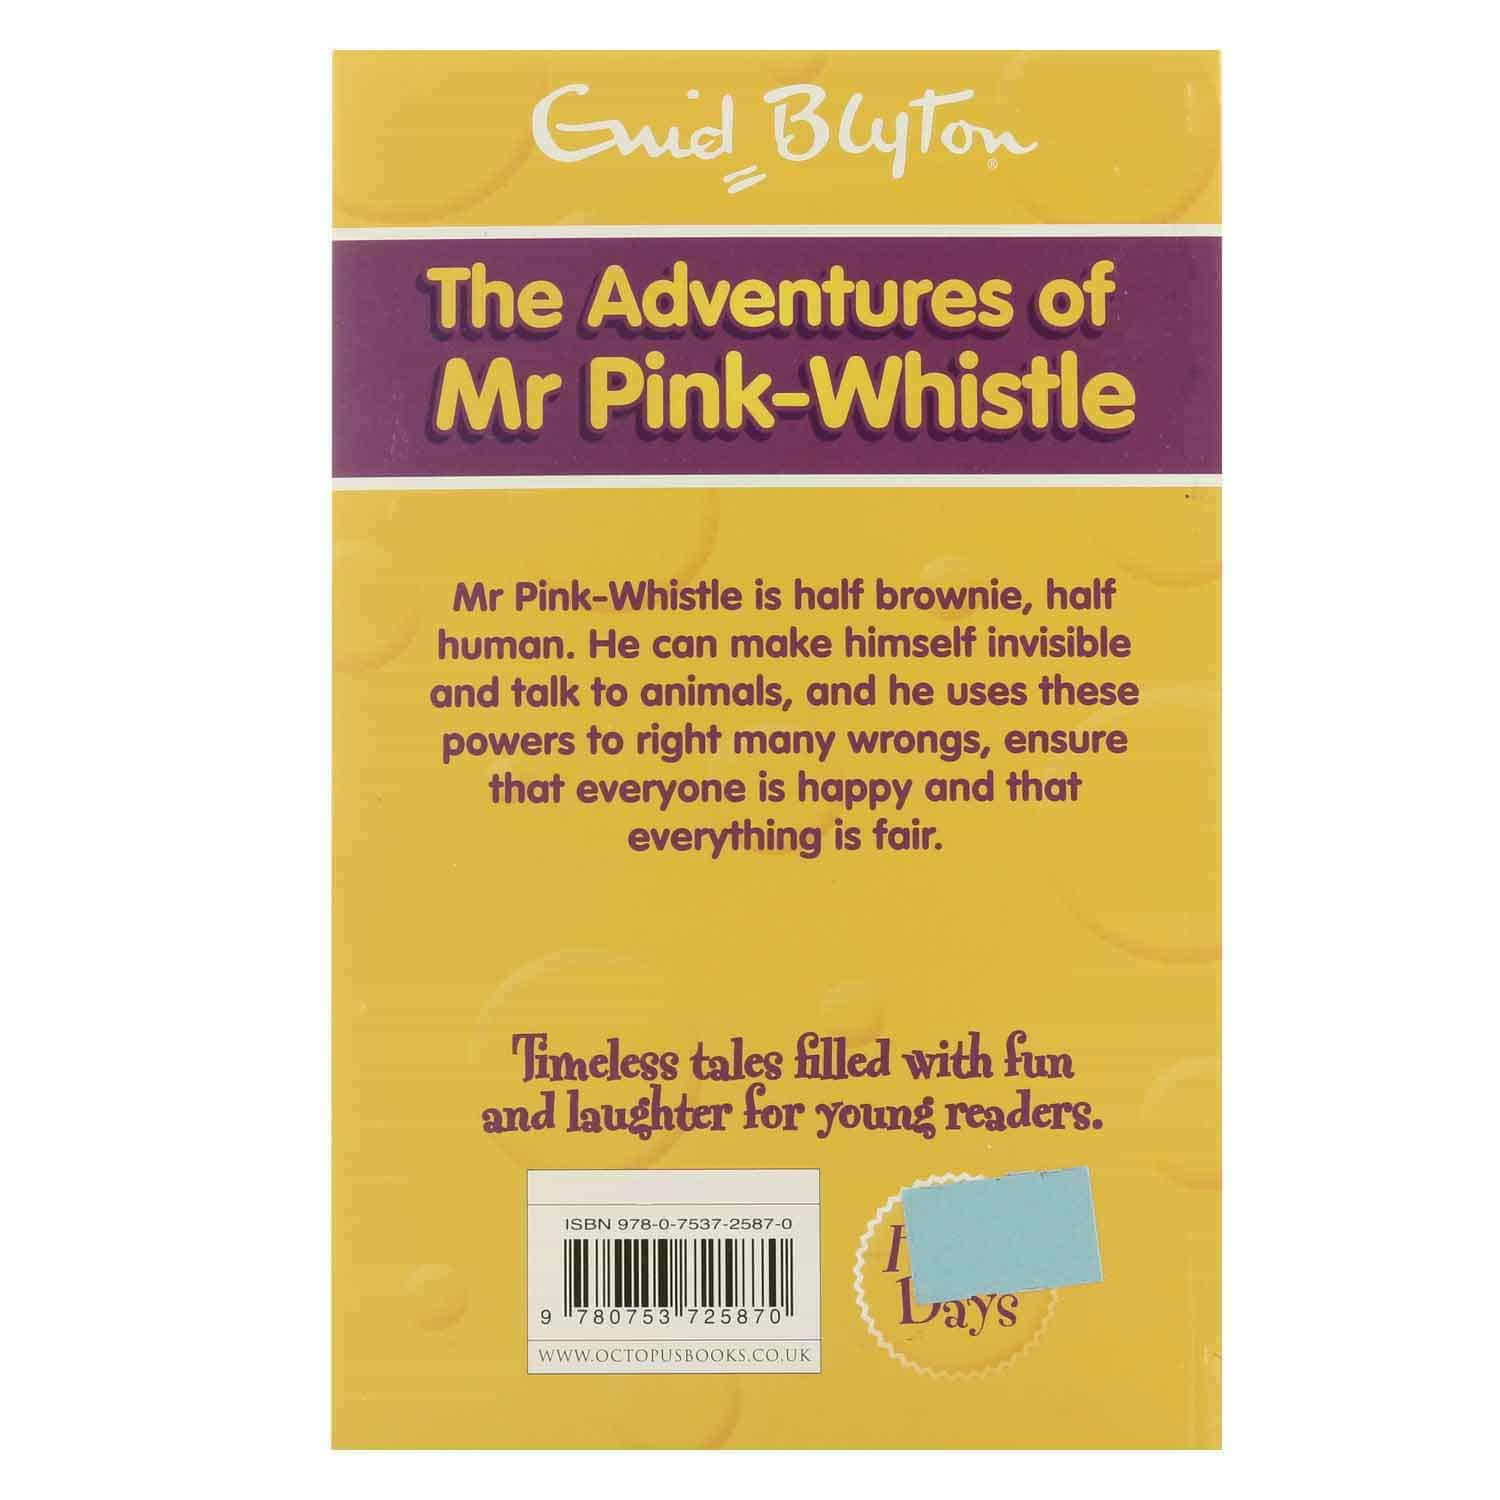 Enid Blyton - The Adventure of Mr. Pink- Whistle